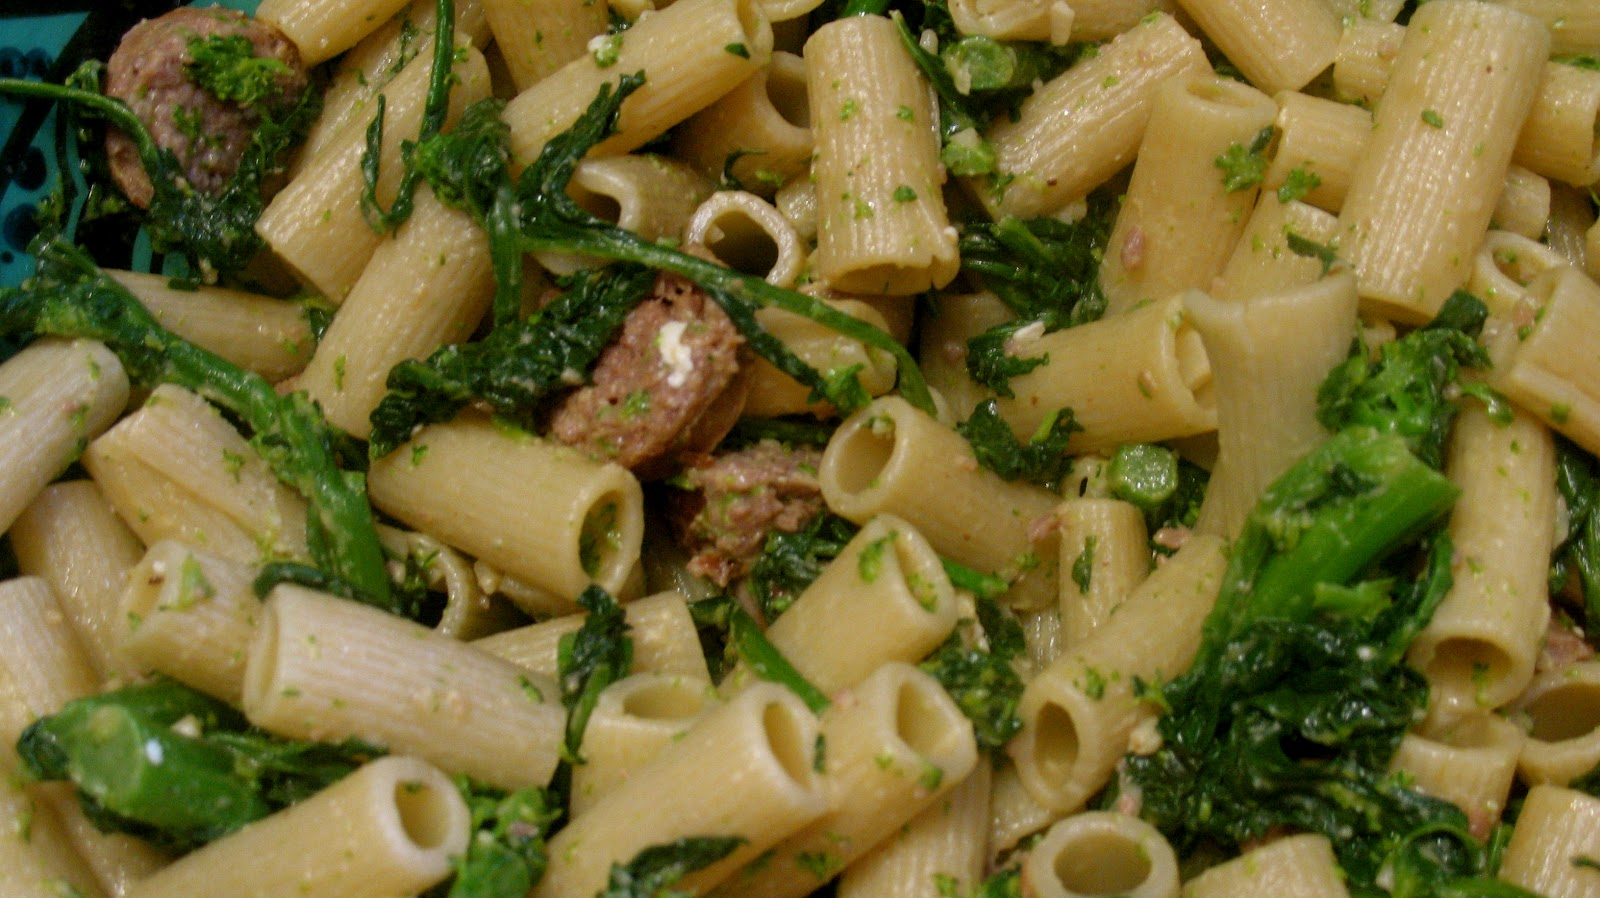 Cousins in the Kitchen: Rigatoni with Broccoli Rabe and Turkey Sausage